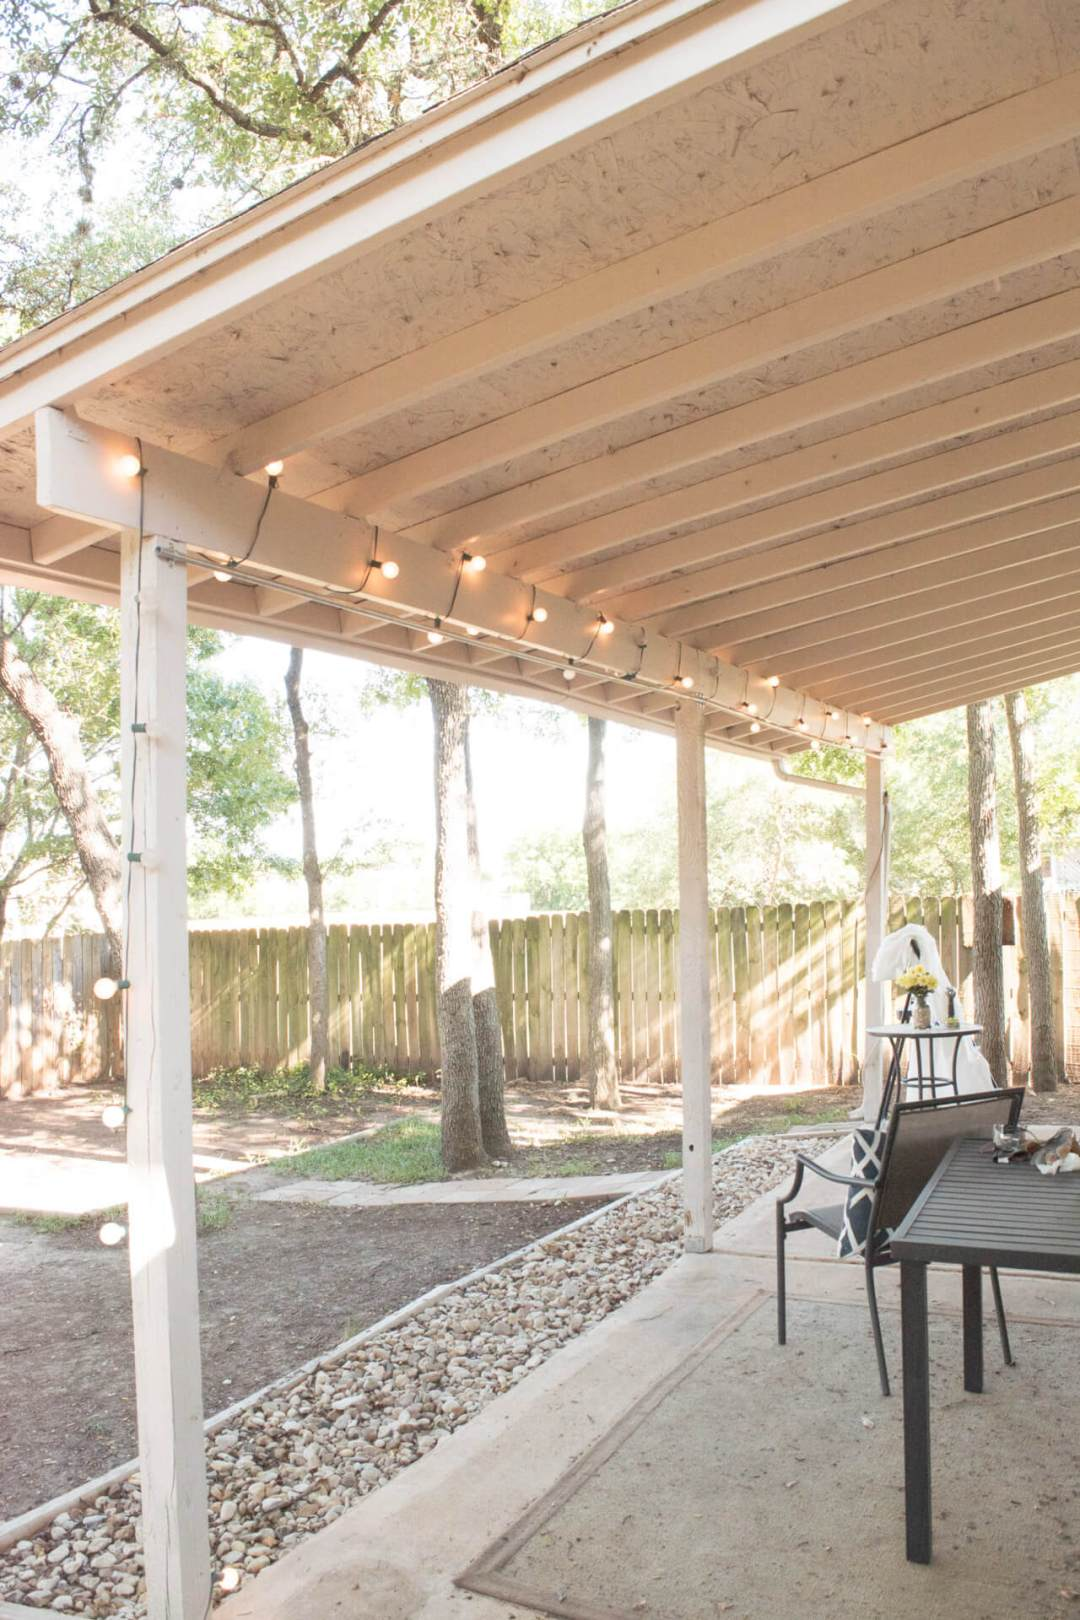 Backyard patio conduit pipe hung up with no curtains